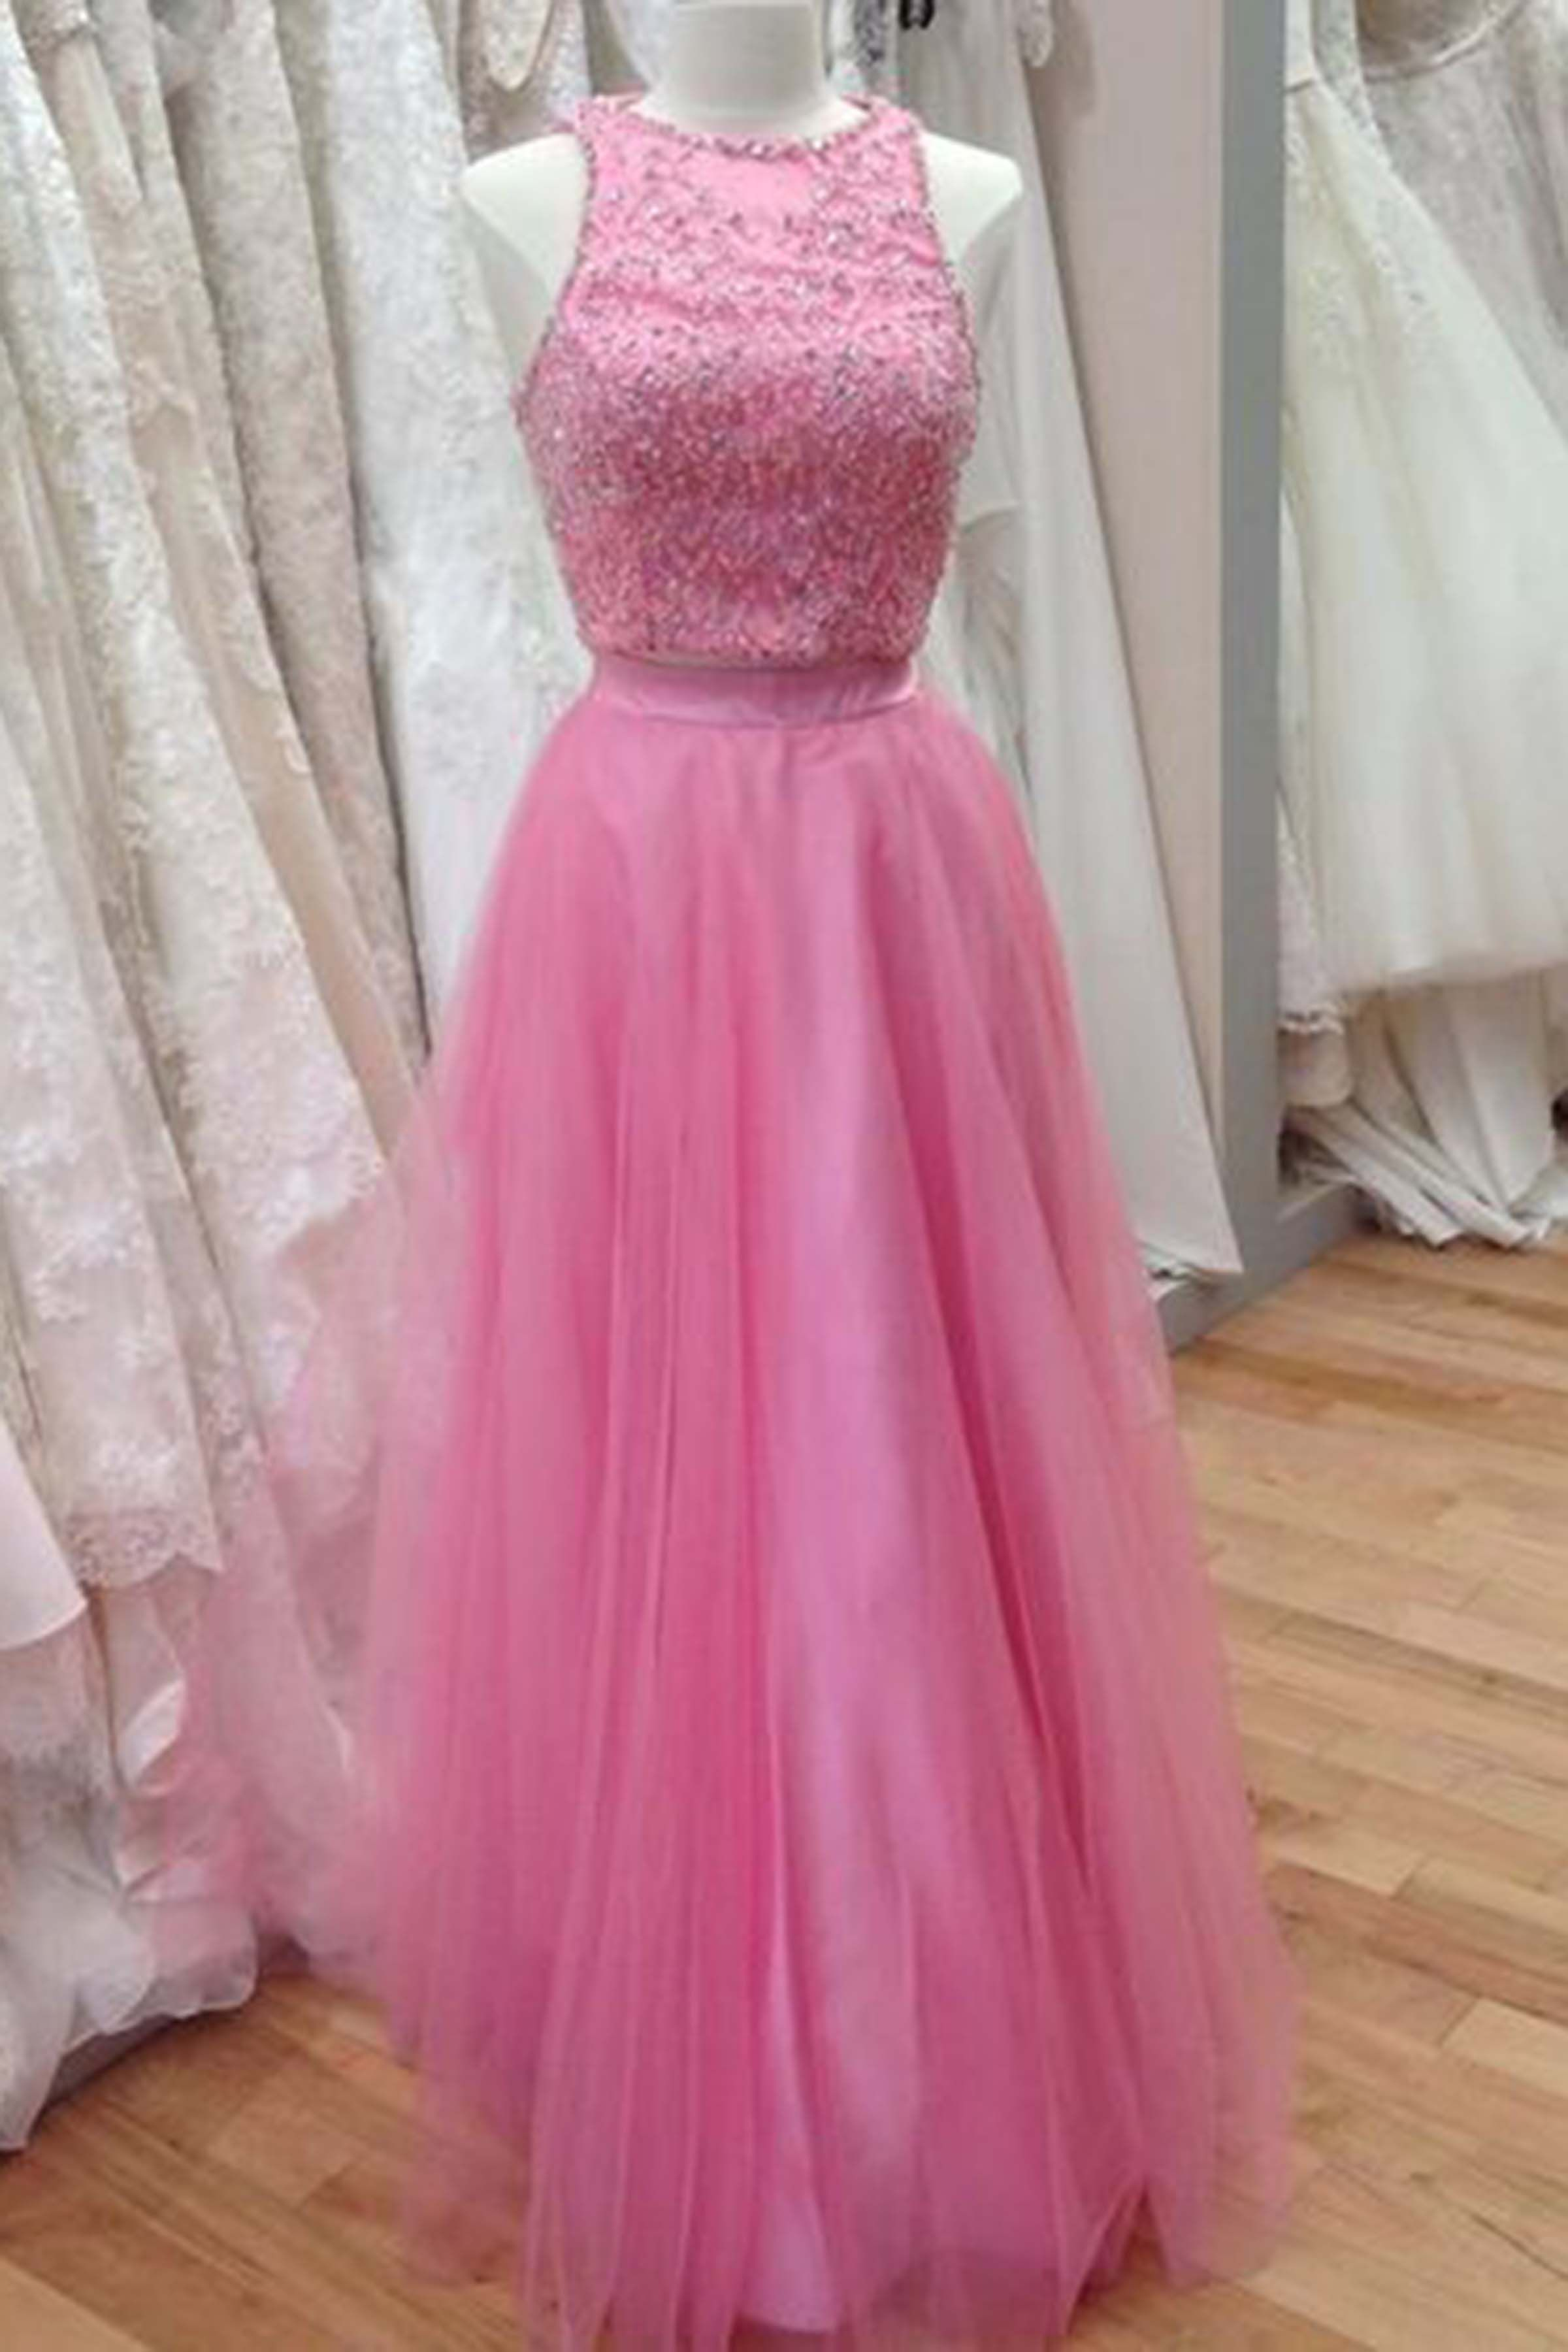 Pink tulle beading round neck long dress prom dress for teens prom